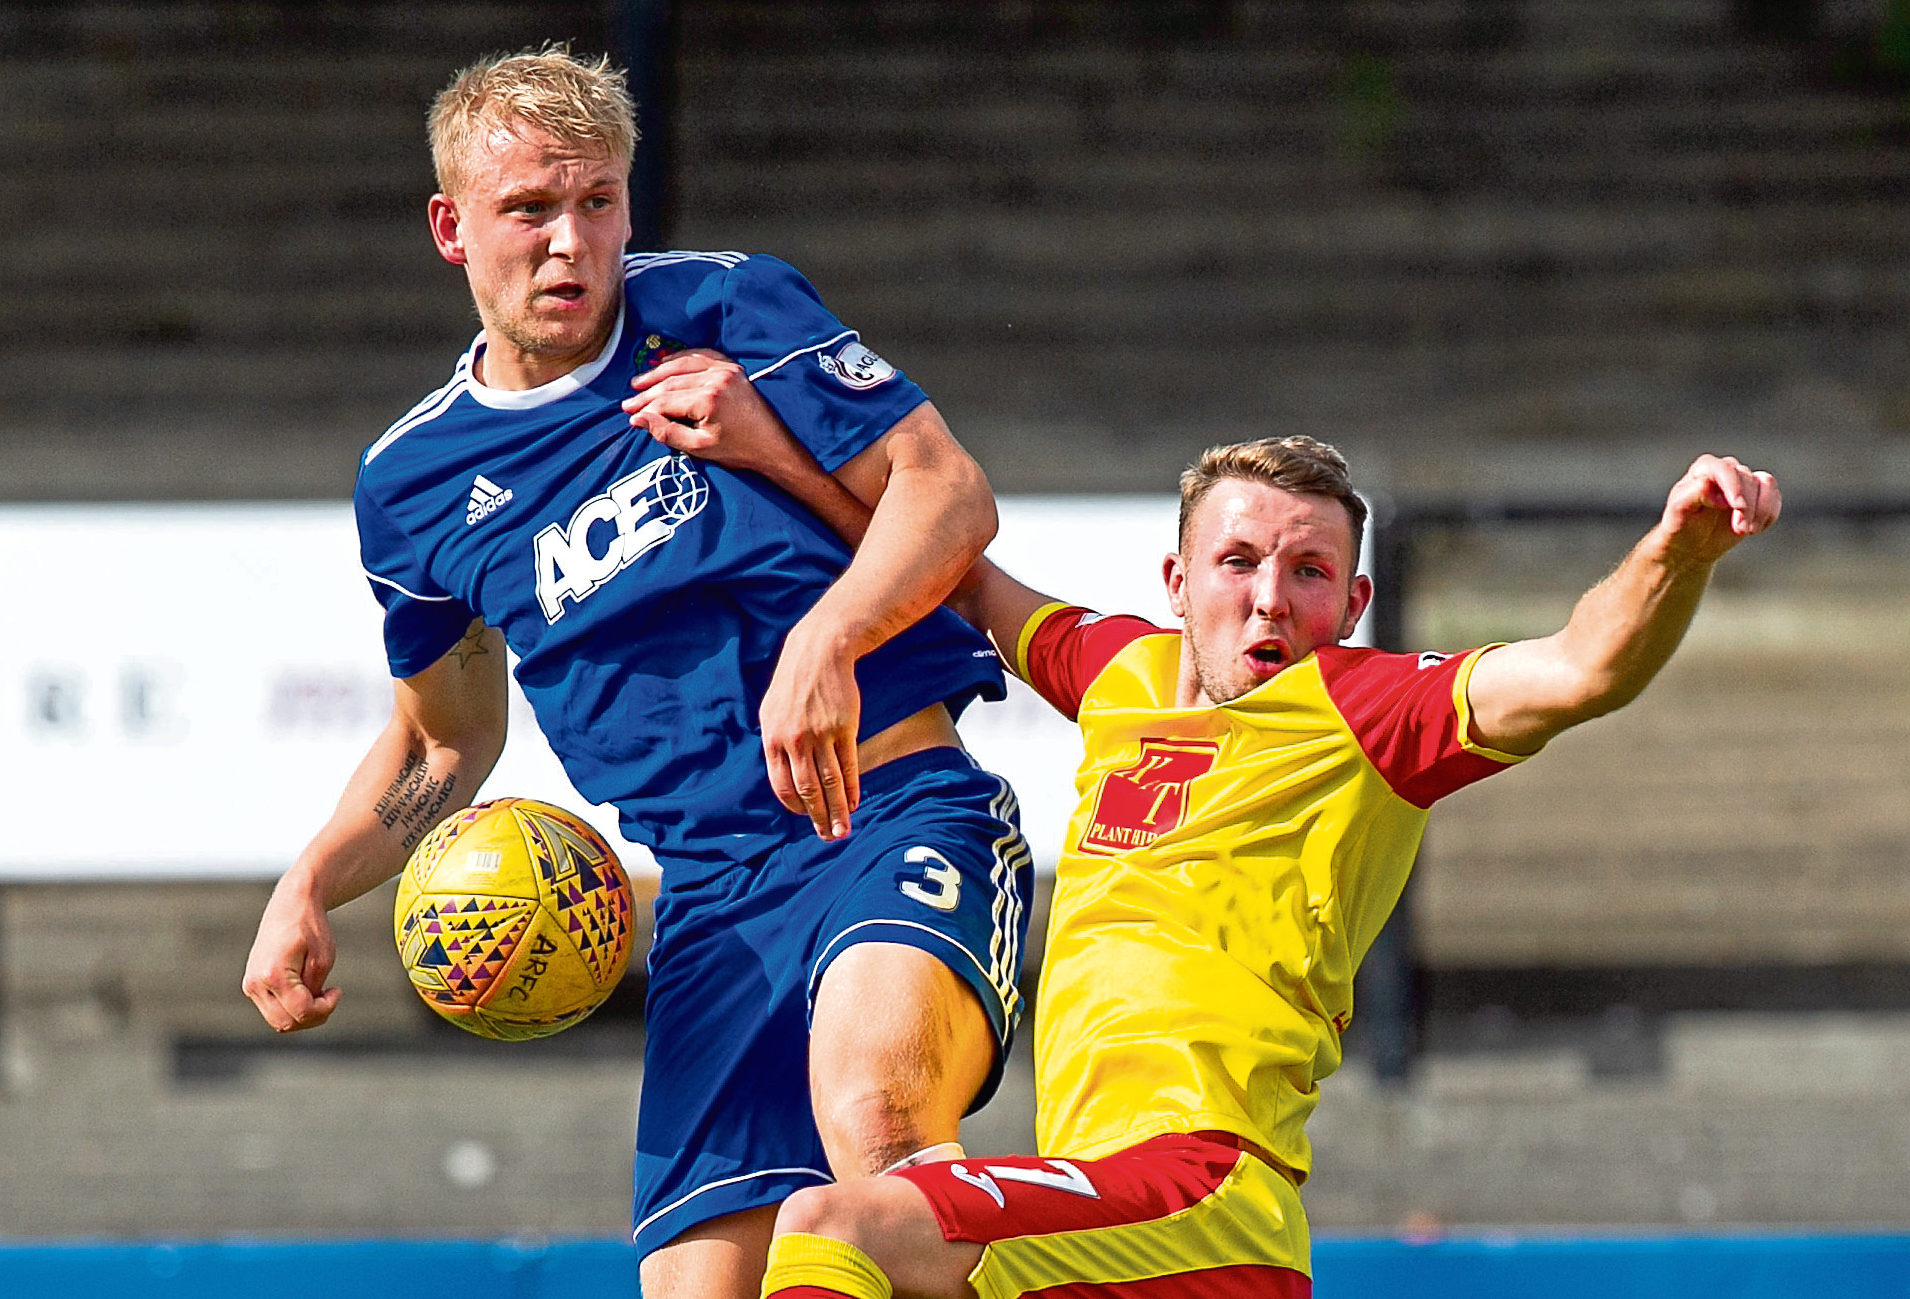 Harry Milne in action against Albion Rovers.